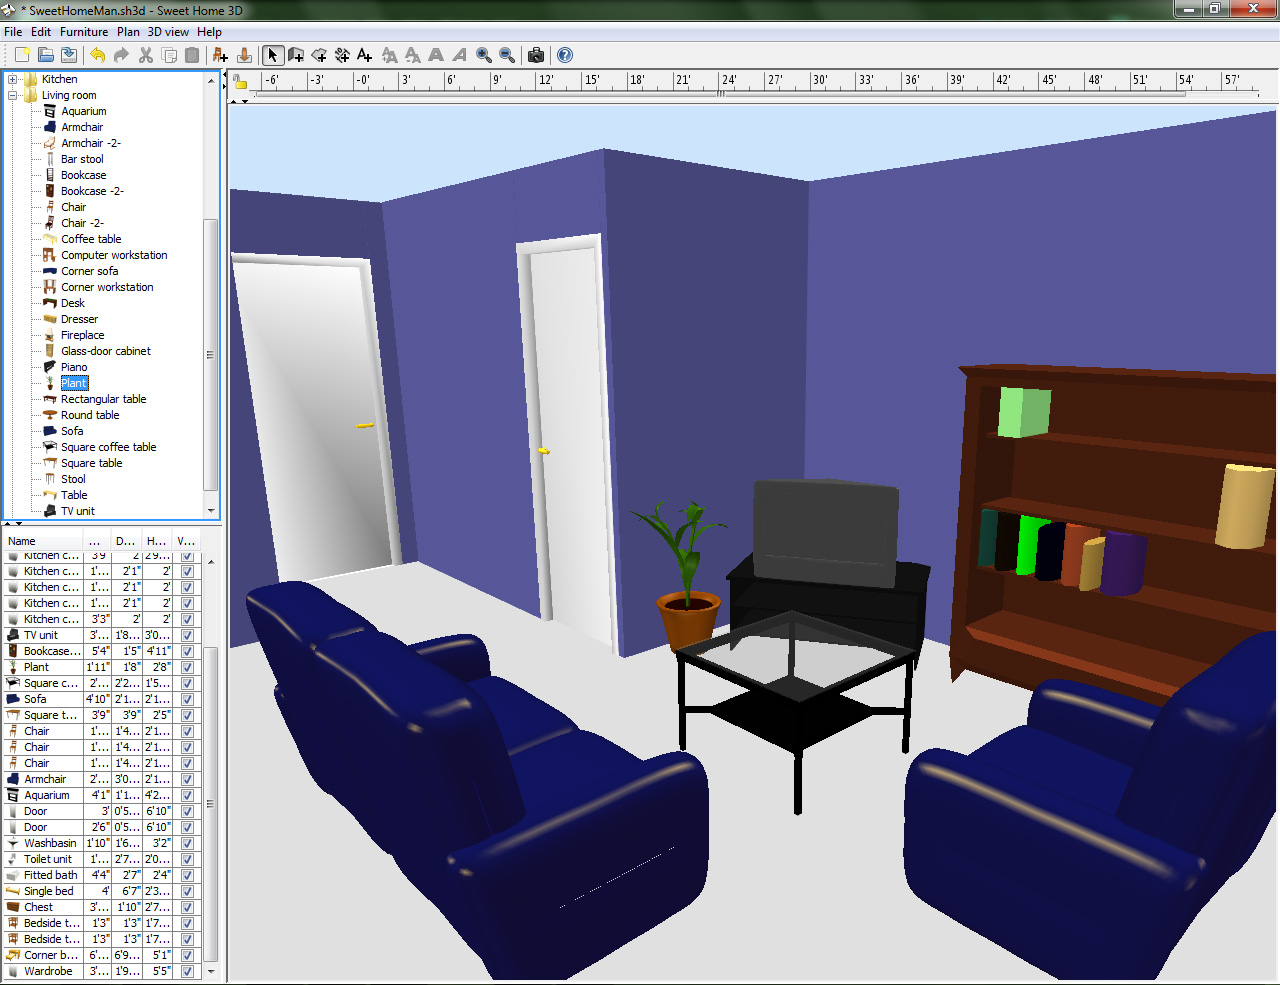 House interior design software Free home design software download